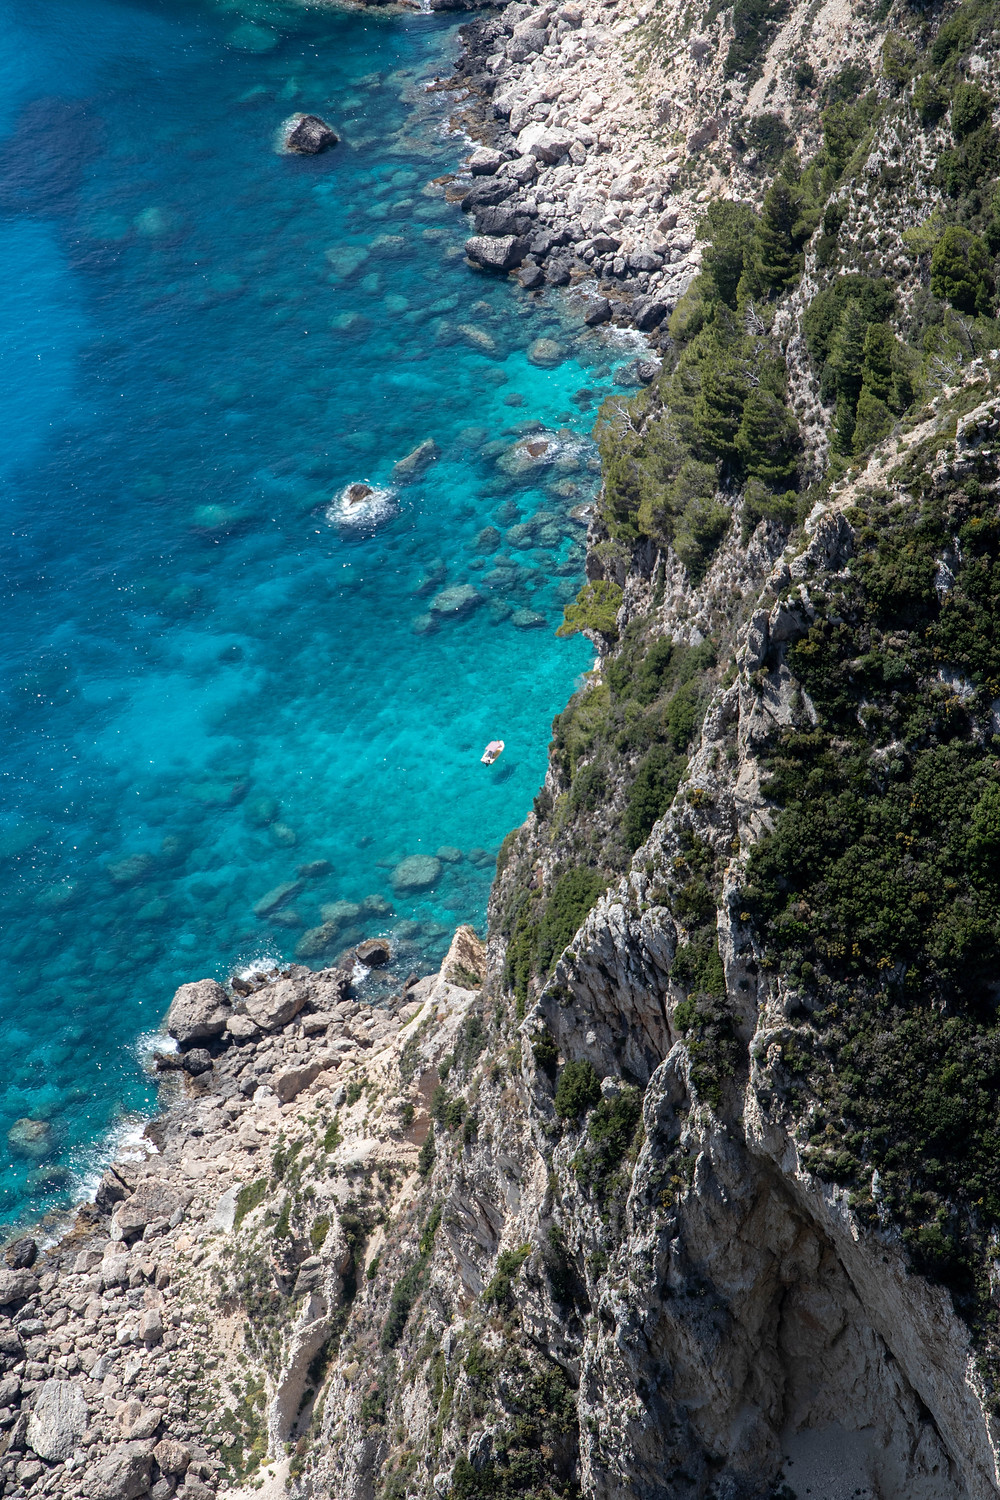 Small white boat in the blue water in front of rocky cliffs in Corfu (by Hungrig auf Meer)